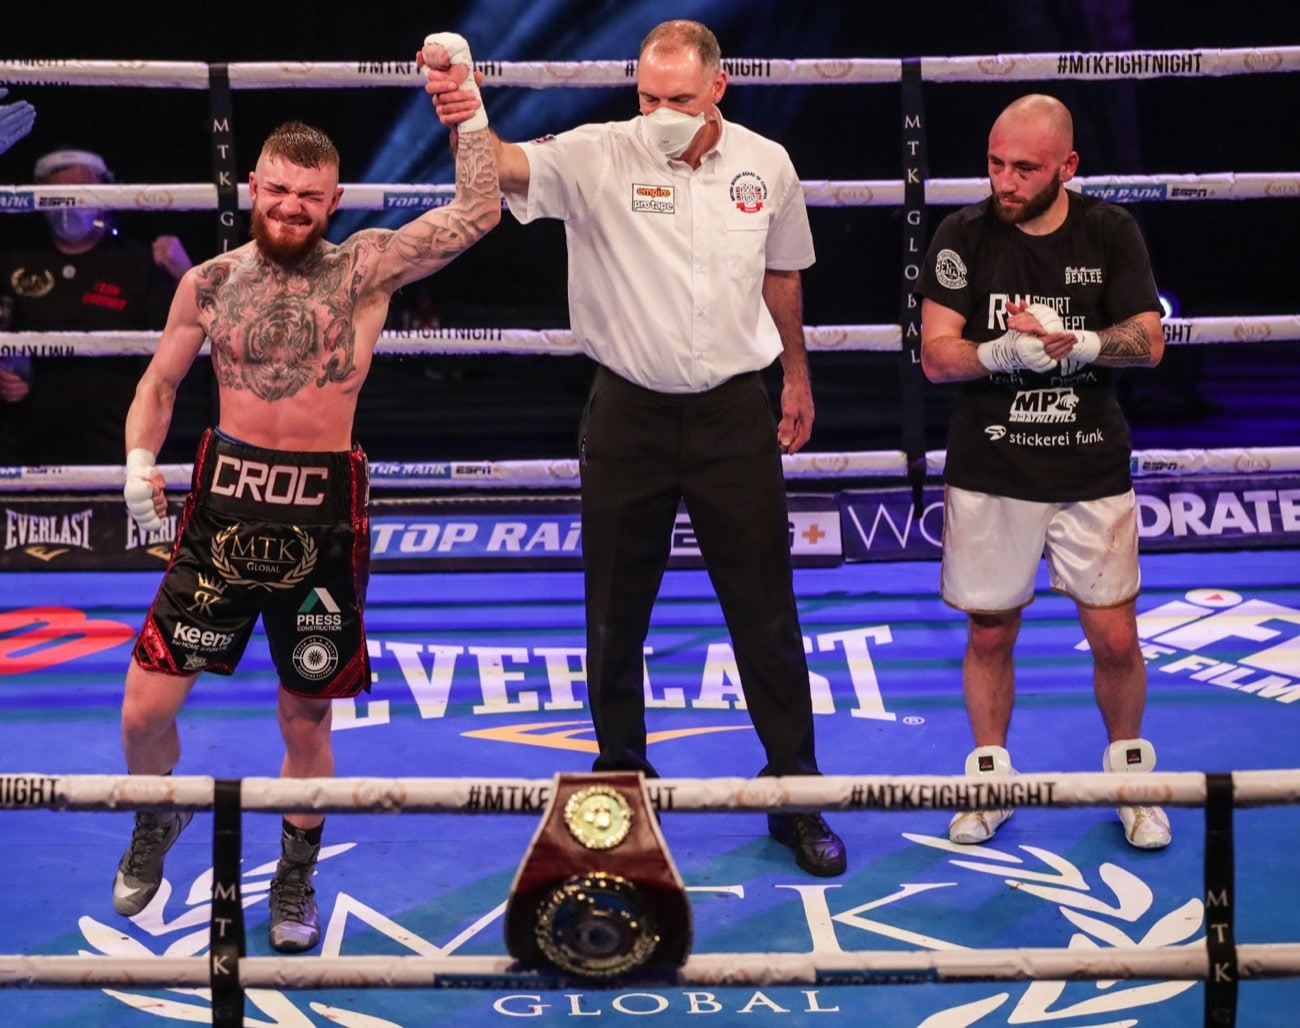 Gary Cully, Lewis Crocker - Boxing Results